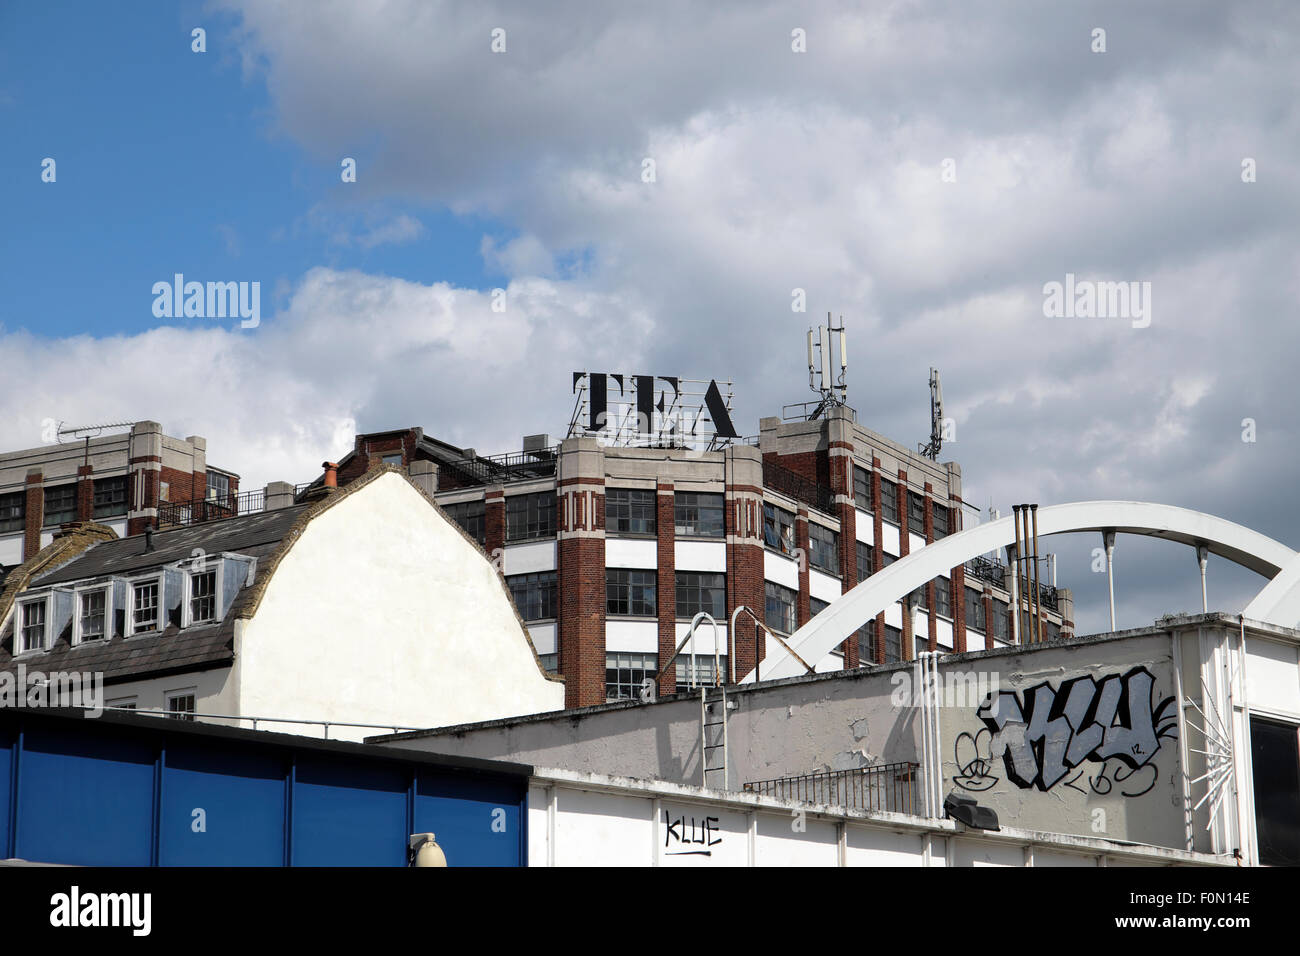 View of the Tea Building sign over roofs in Shoreditch, London UK  KATHY DEWITT - Stock Image